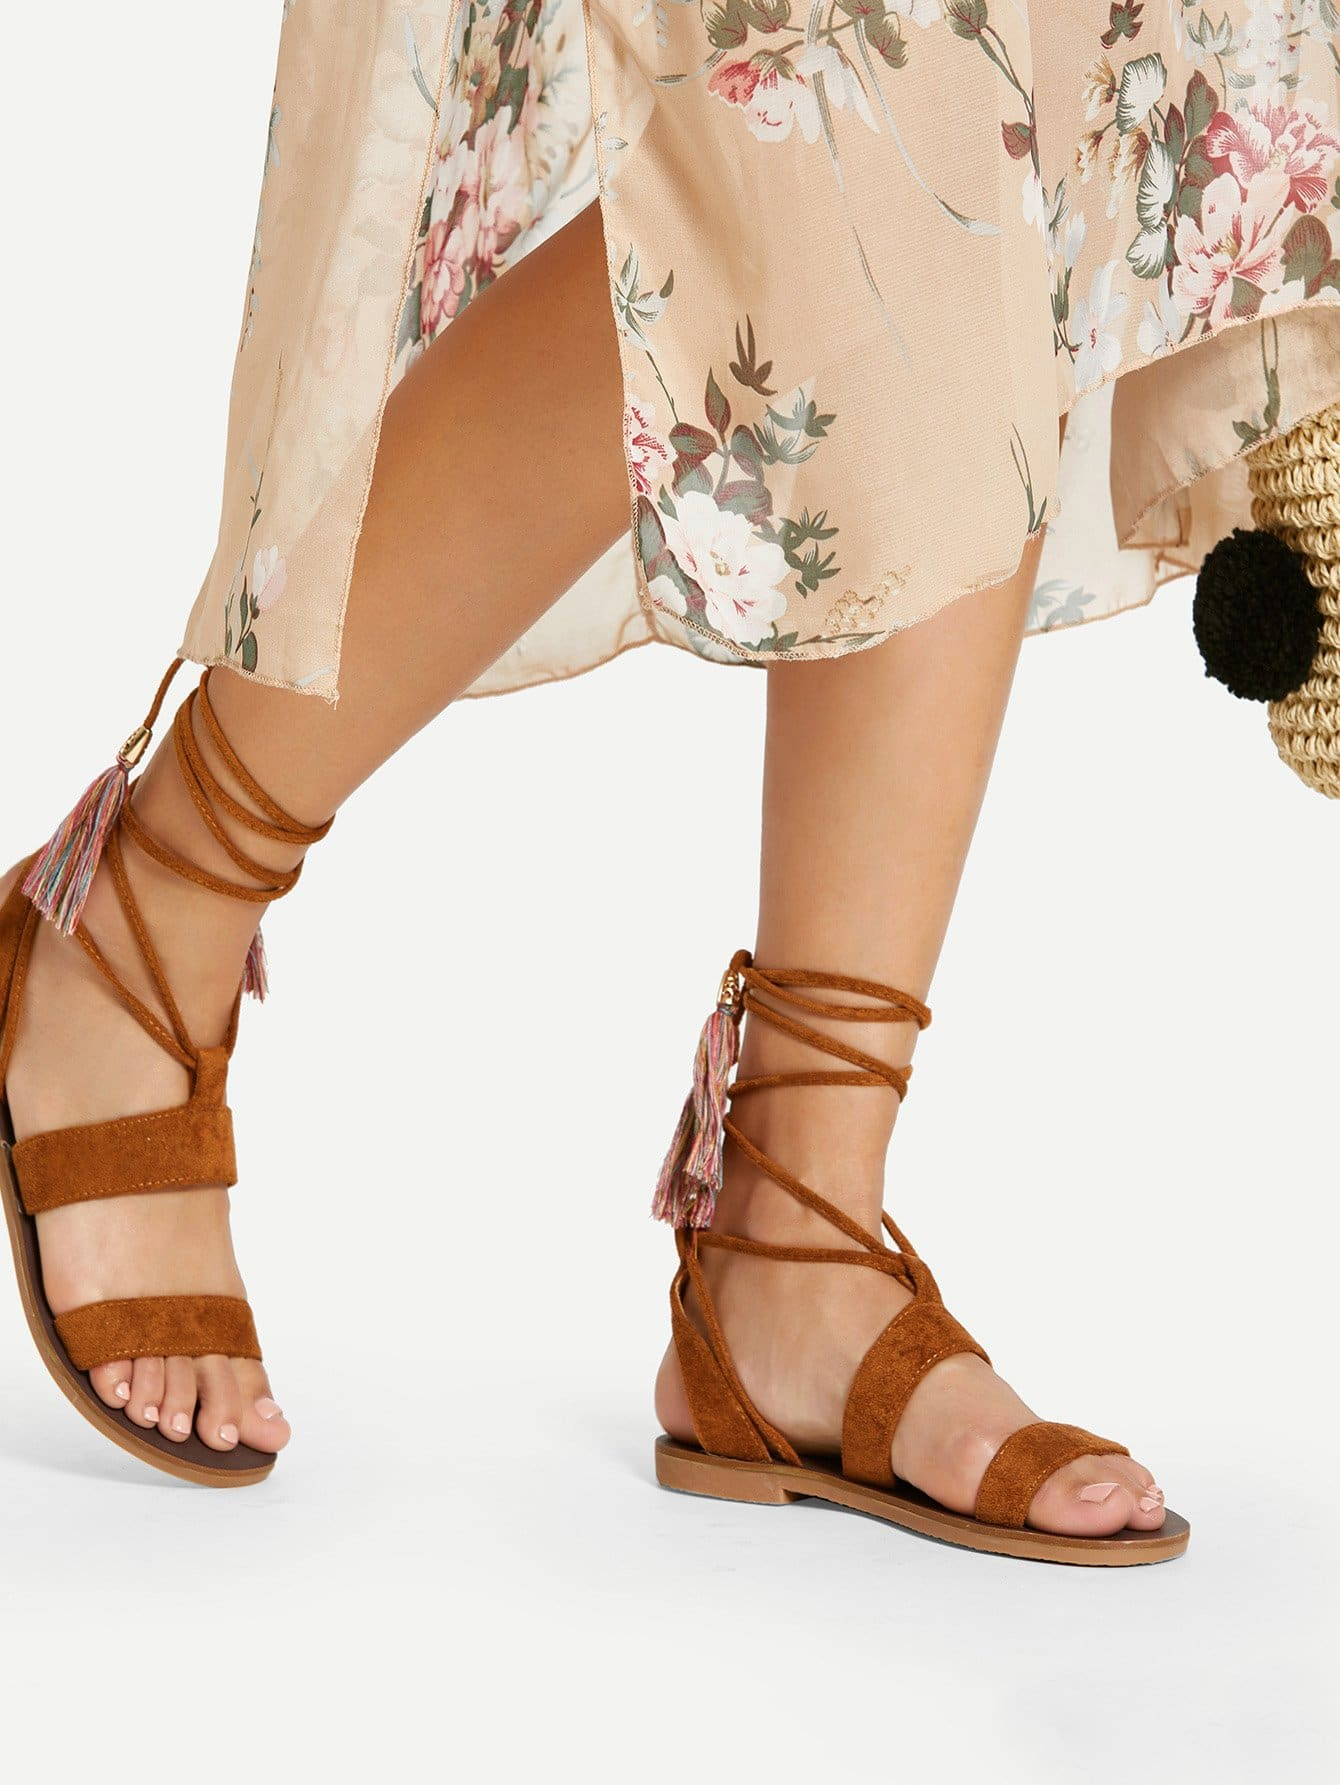 Tassel Tie Peep Toe Flat Sandals xda 2018 new summer sandals women flat shoes bandage bohemia leisure lady casual sandals peep toe outdoor fashion sandals f171